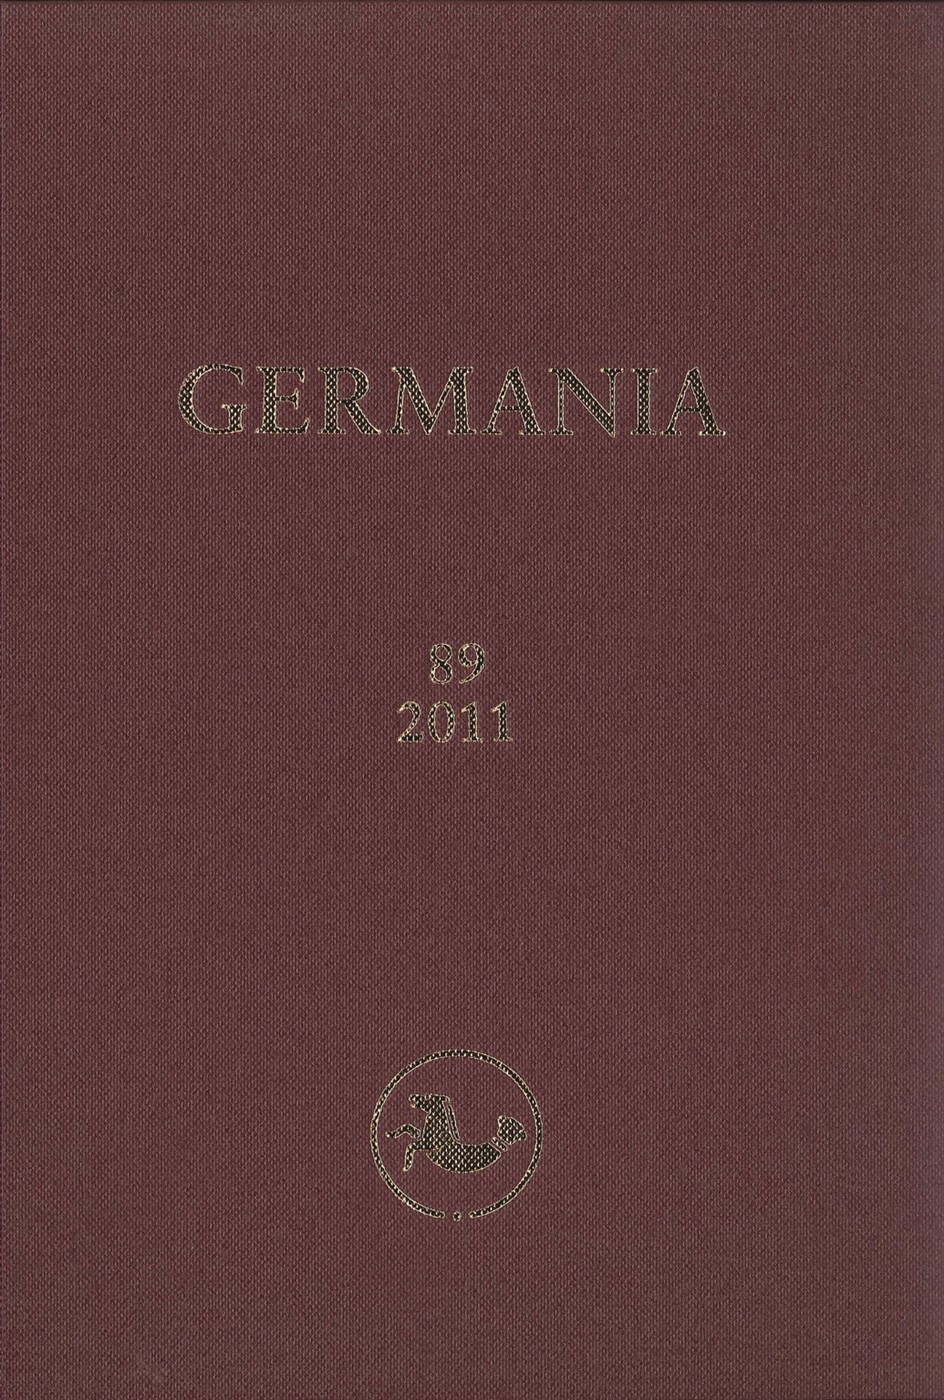 Germania, 2014 | Buch (Cover)